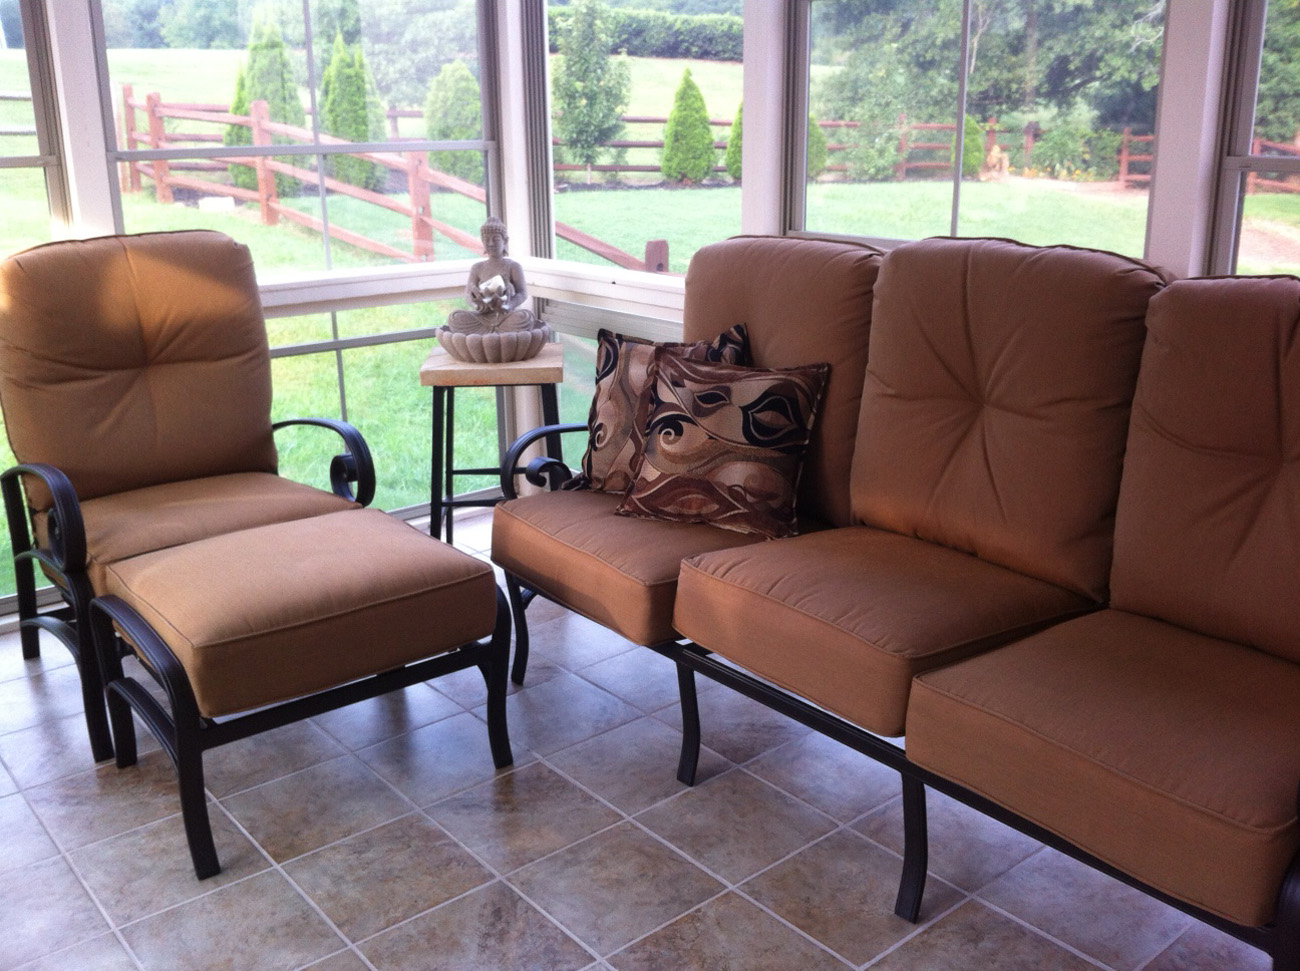 Deck amp patio furniture are often neglected when hiring a pressure - Do You Still Need Further Protection Or Extended Outdoor Living Function Replace The Screens With Porch Windows Such As Eze Breeze For A Flexible Space To